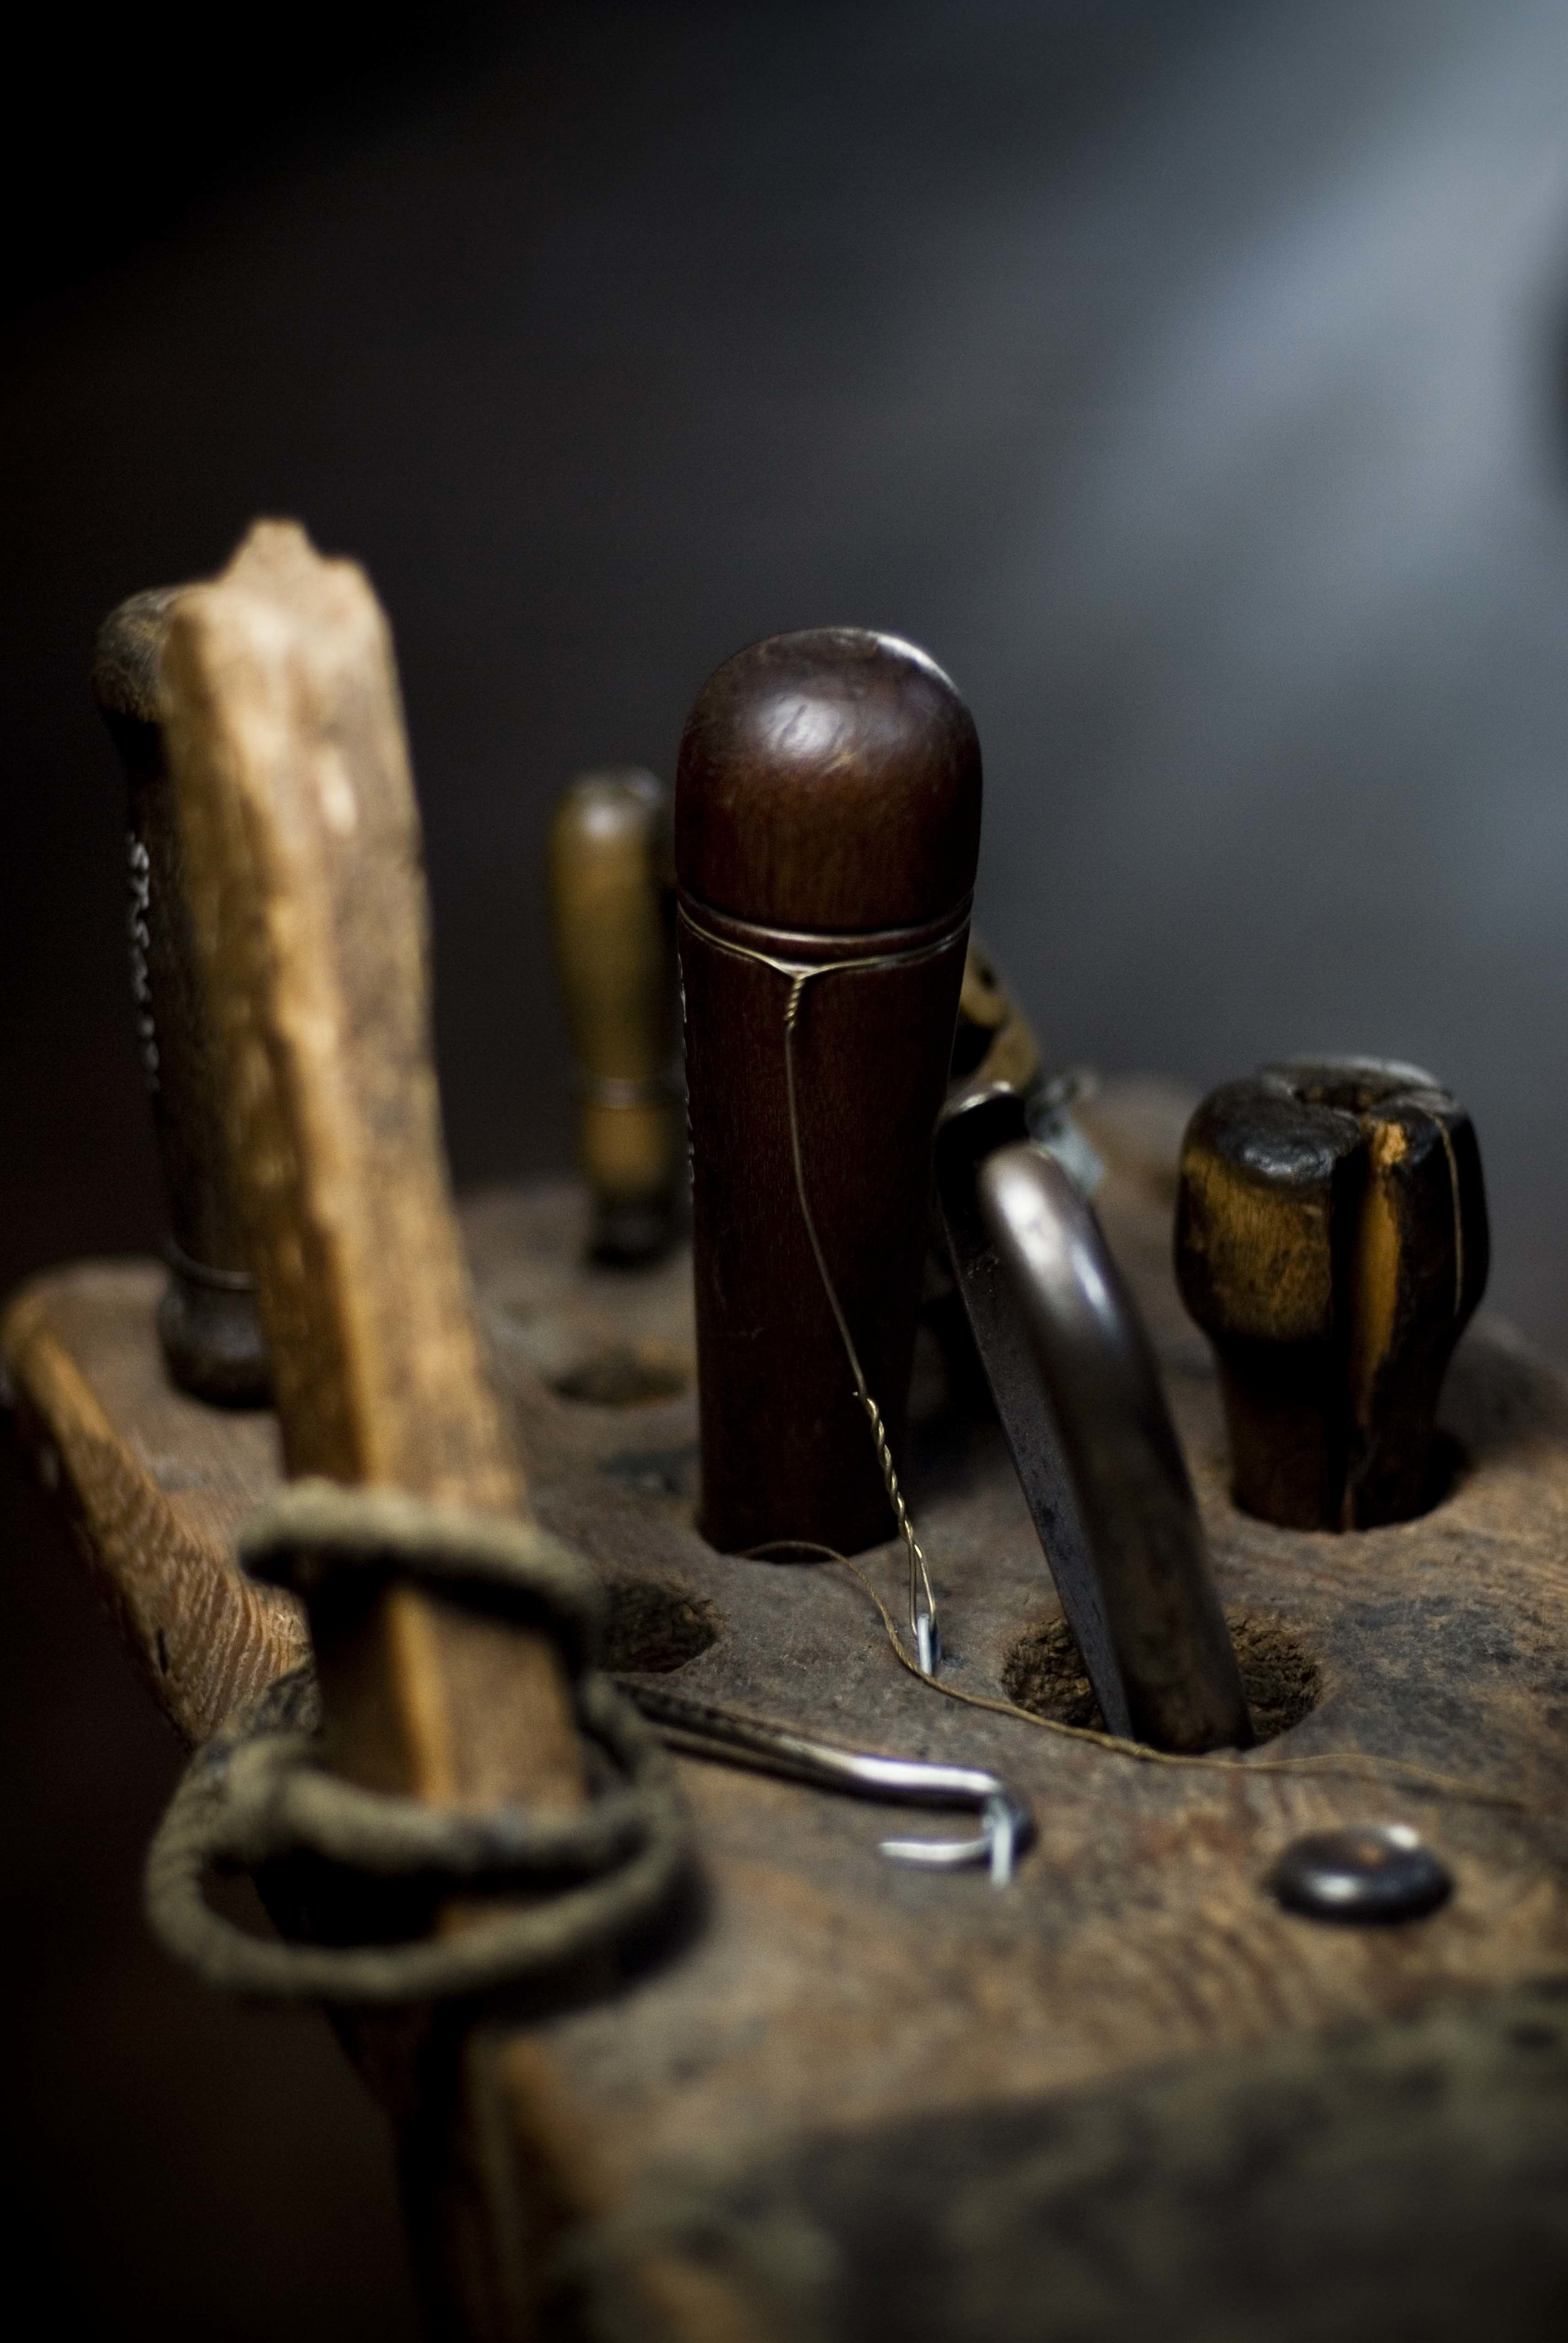 Sail-makers tools